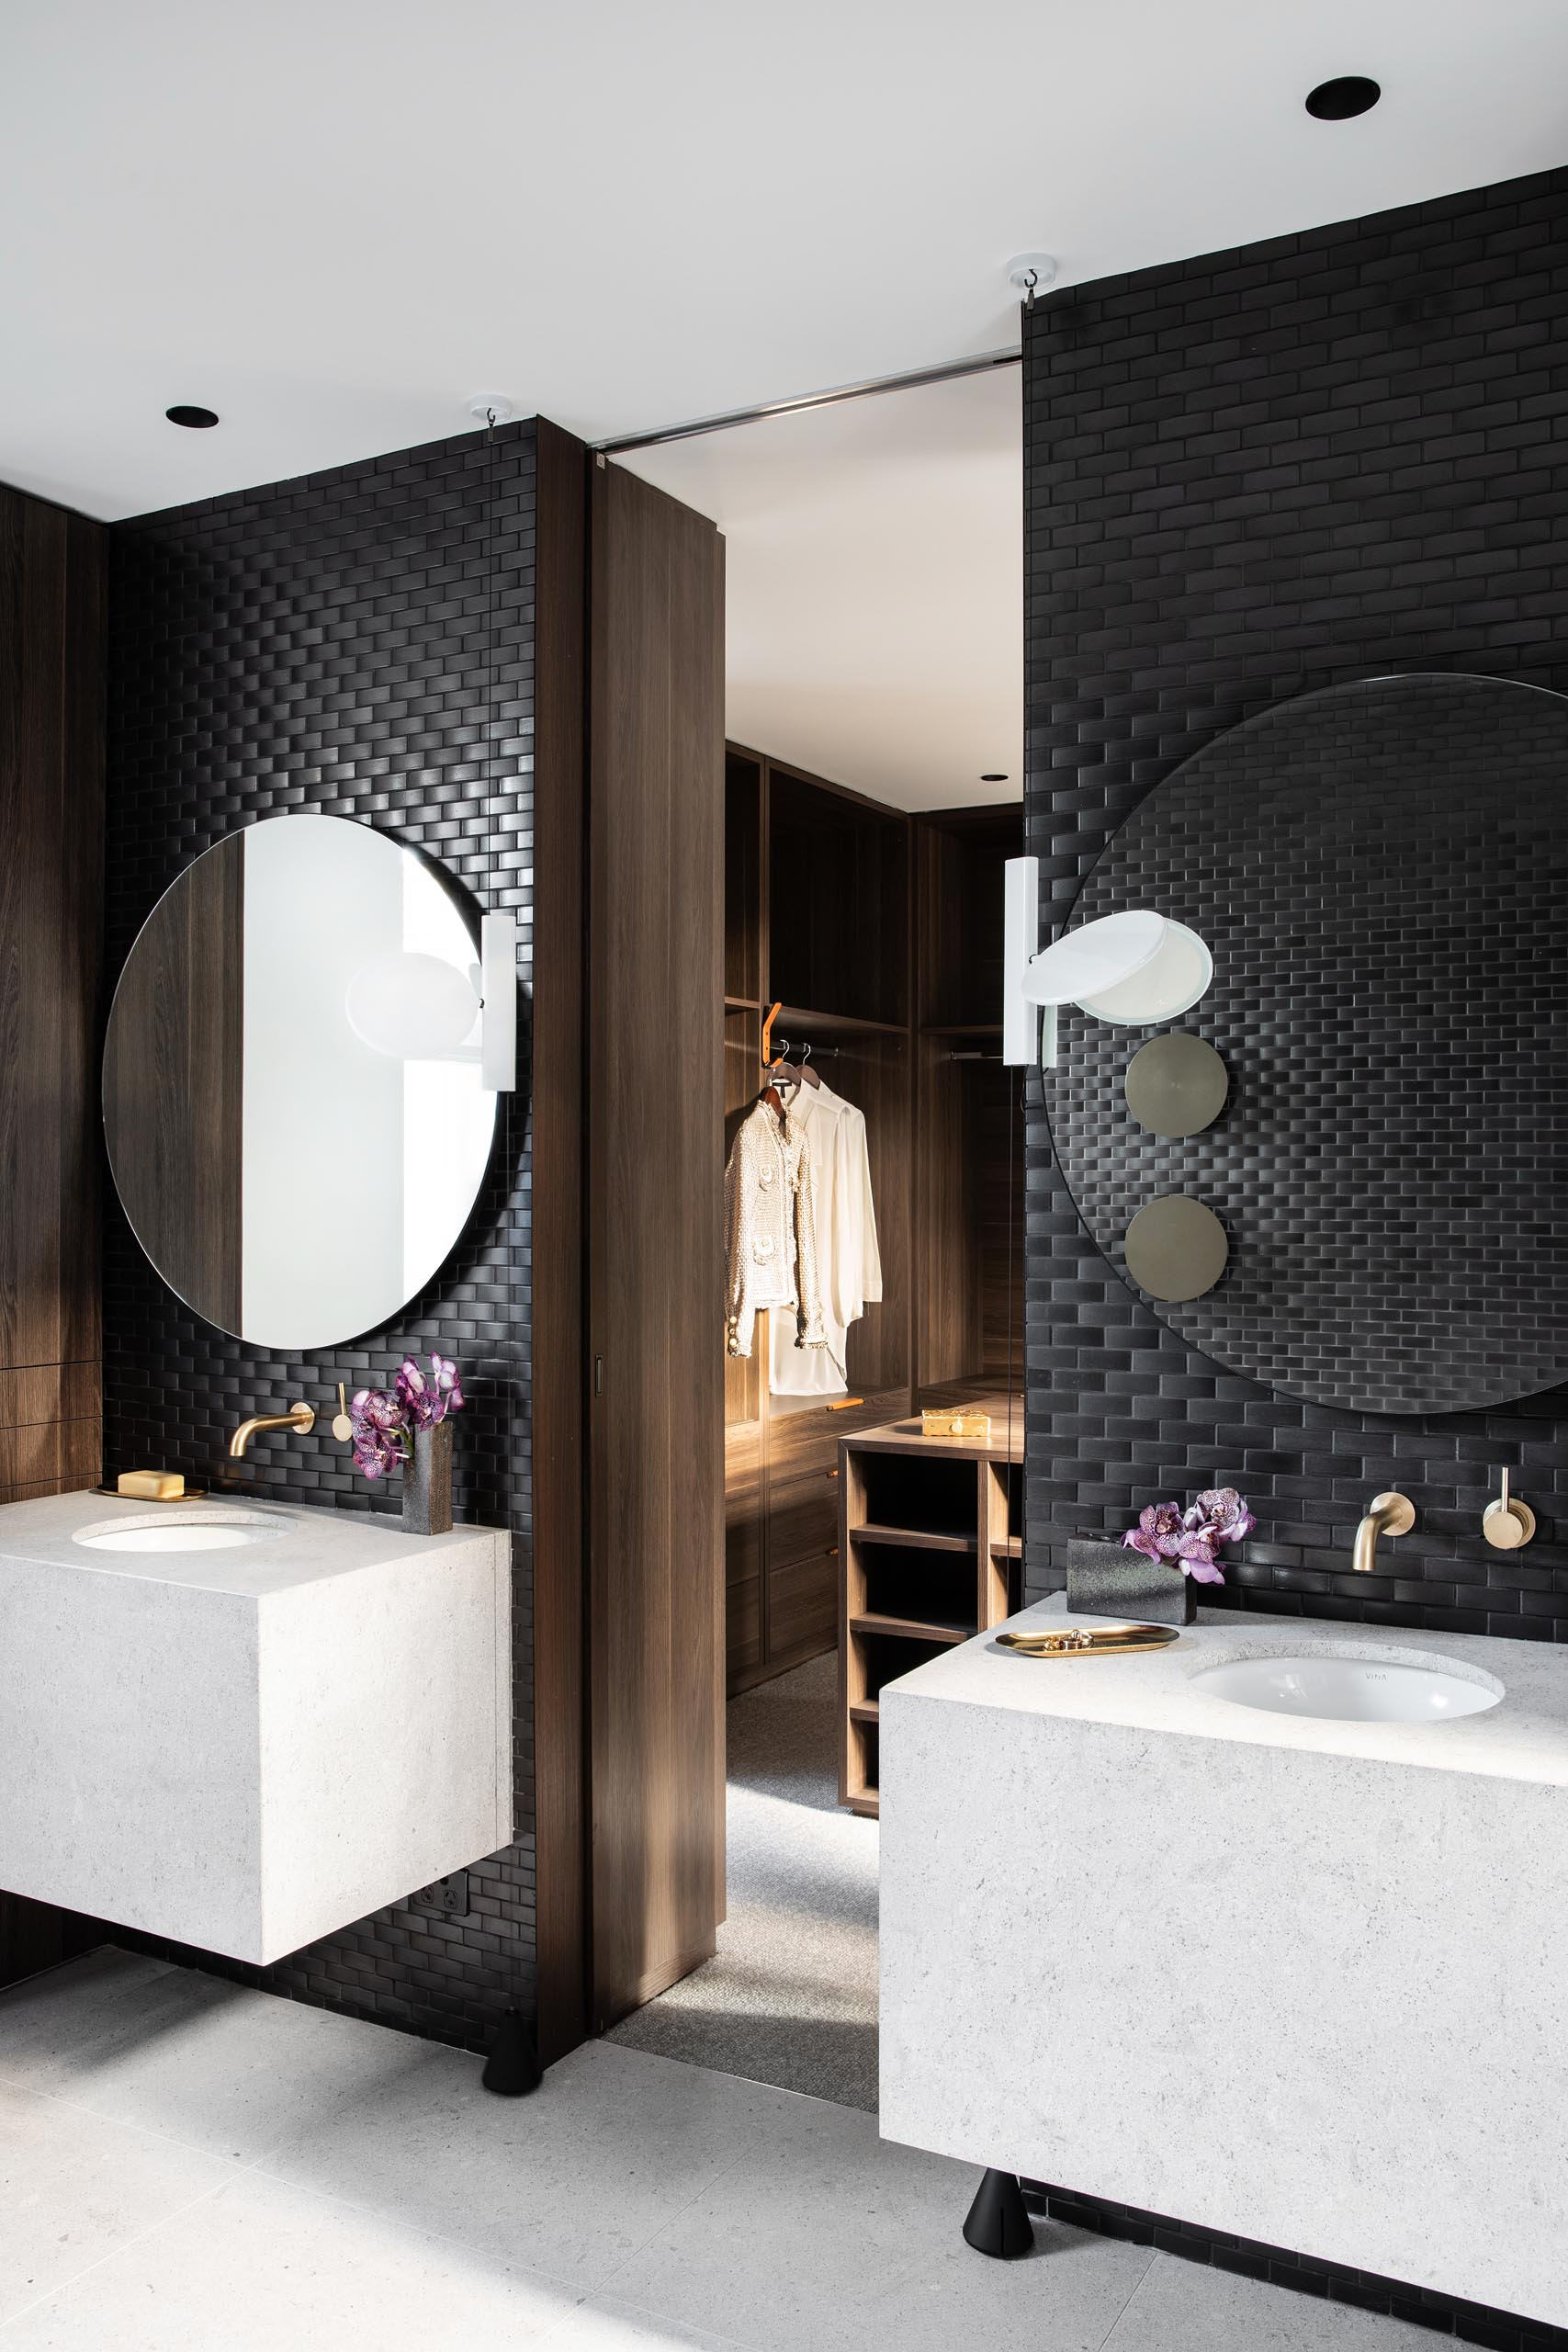 In the master bathroom, black tiles cover walls, while round mirrors hang above white vanities with undermount sinks.